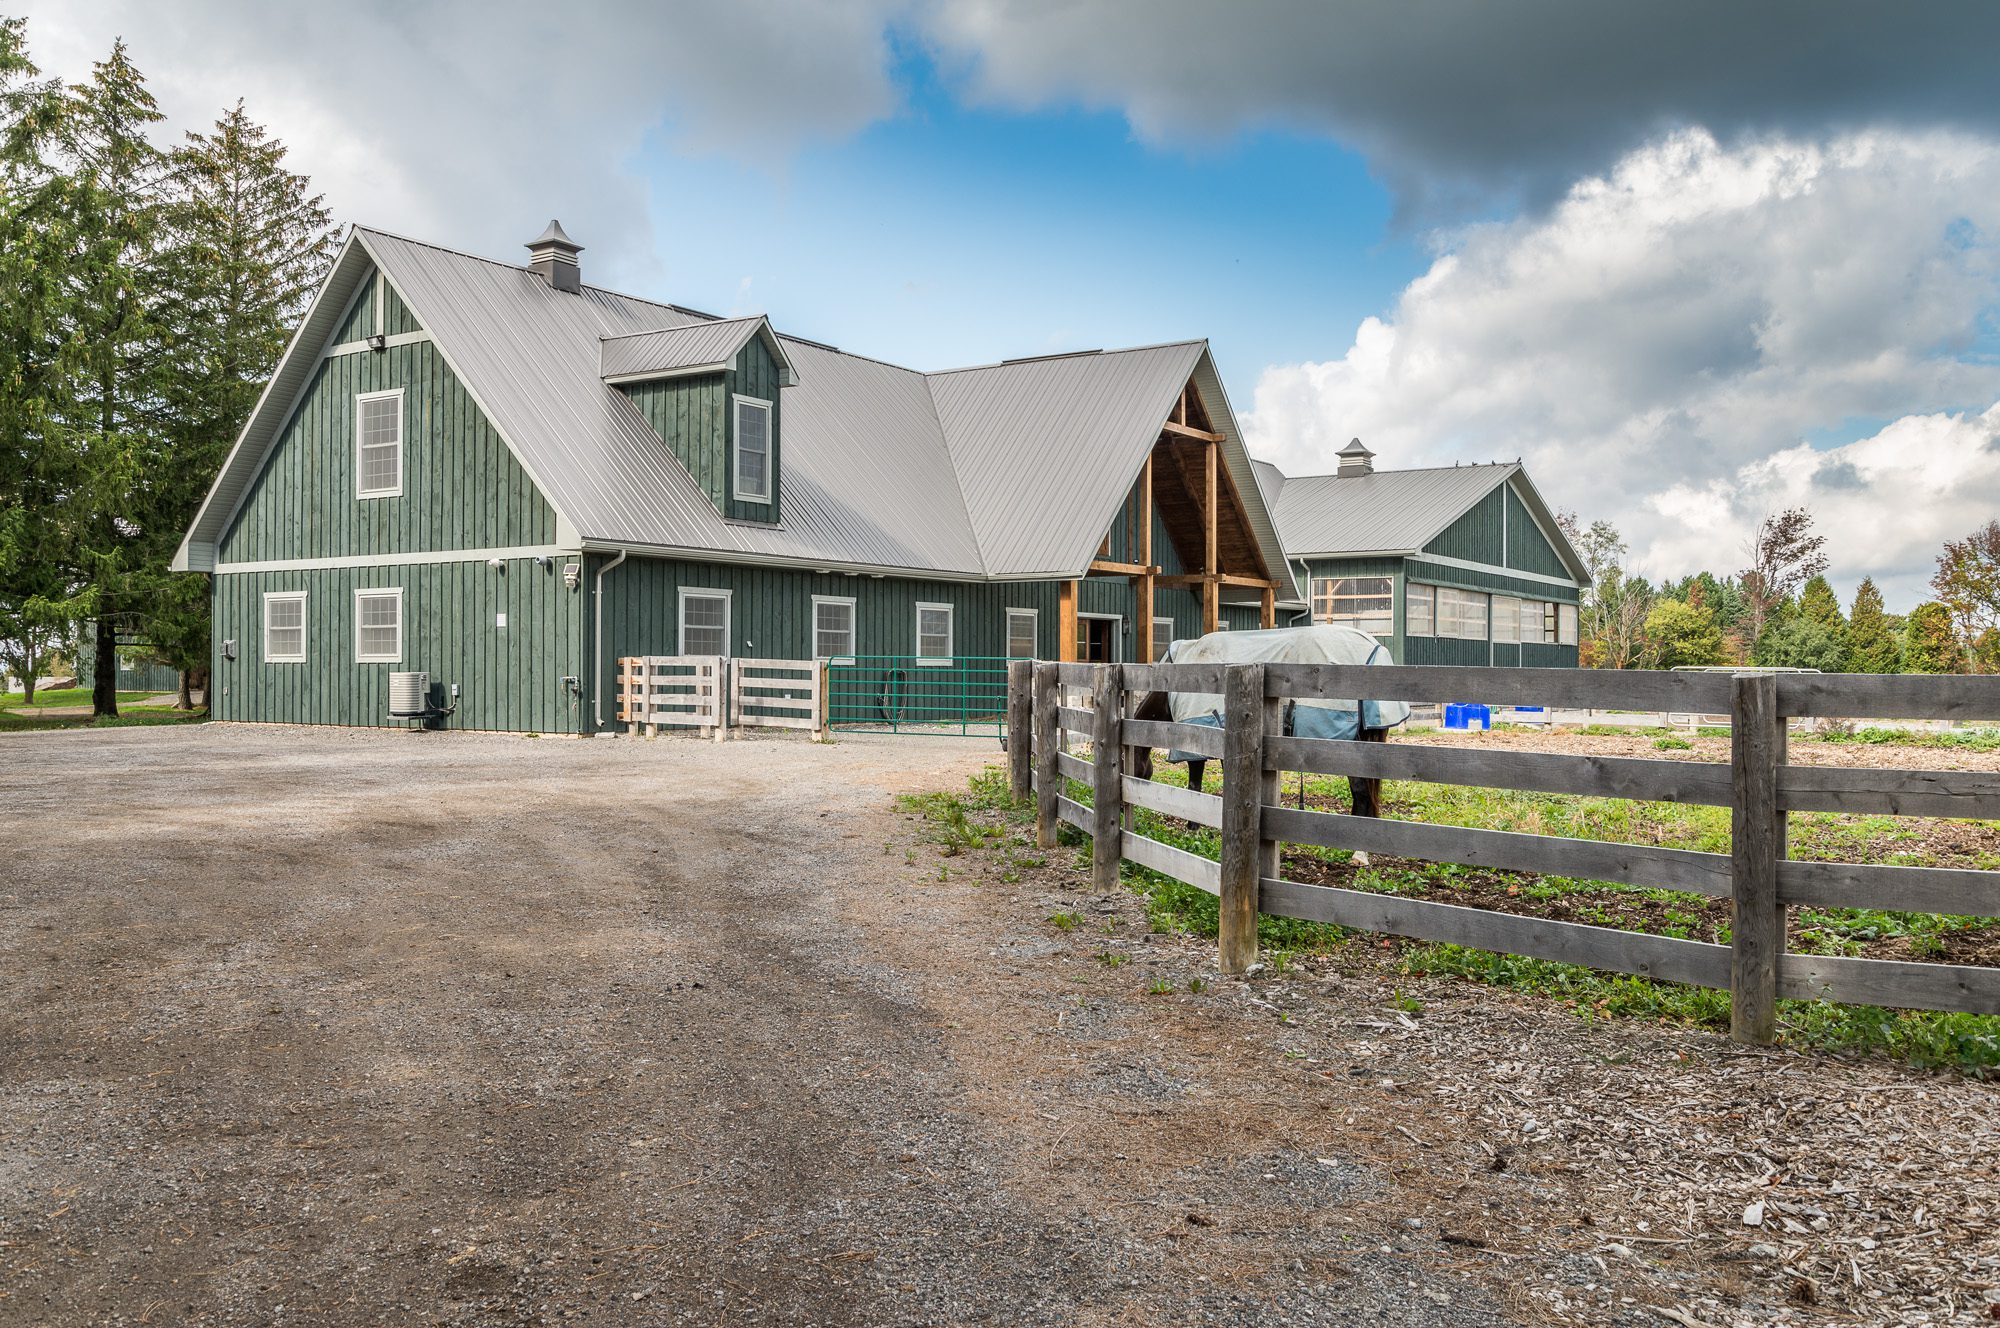 Normerica Timber Frame, Exterior, Country House, Barn, Stables